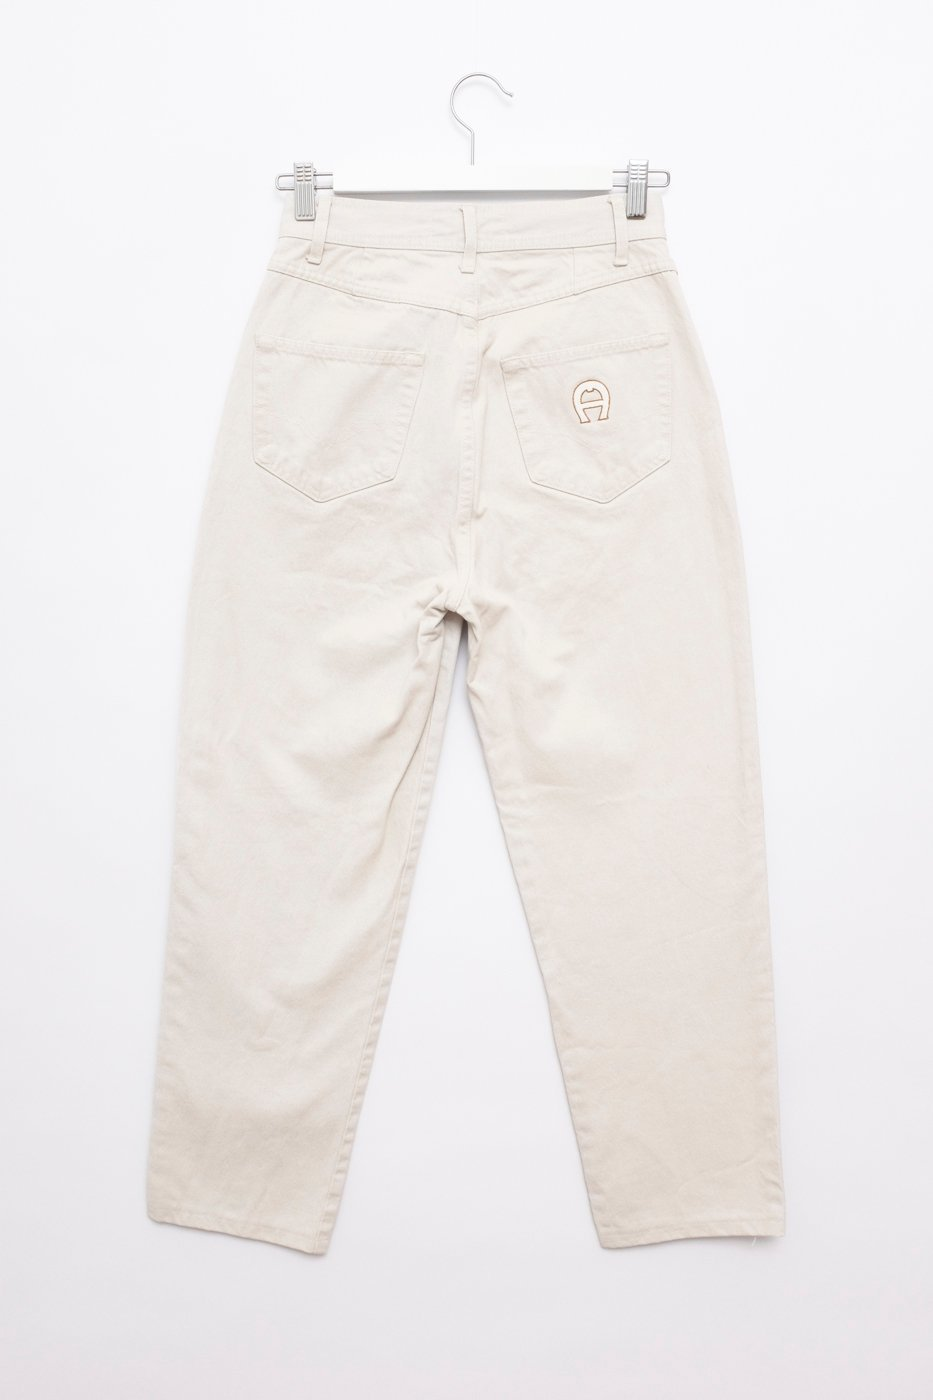 0462_AIGNER OFF WHITE HIGH WAIST CARROT JEANS VINTAGE